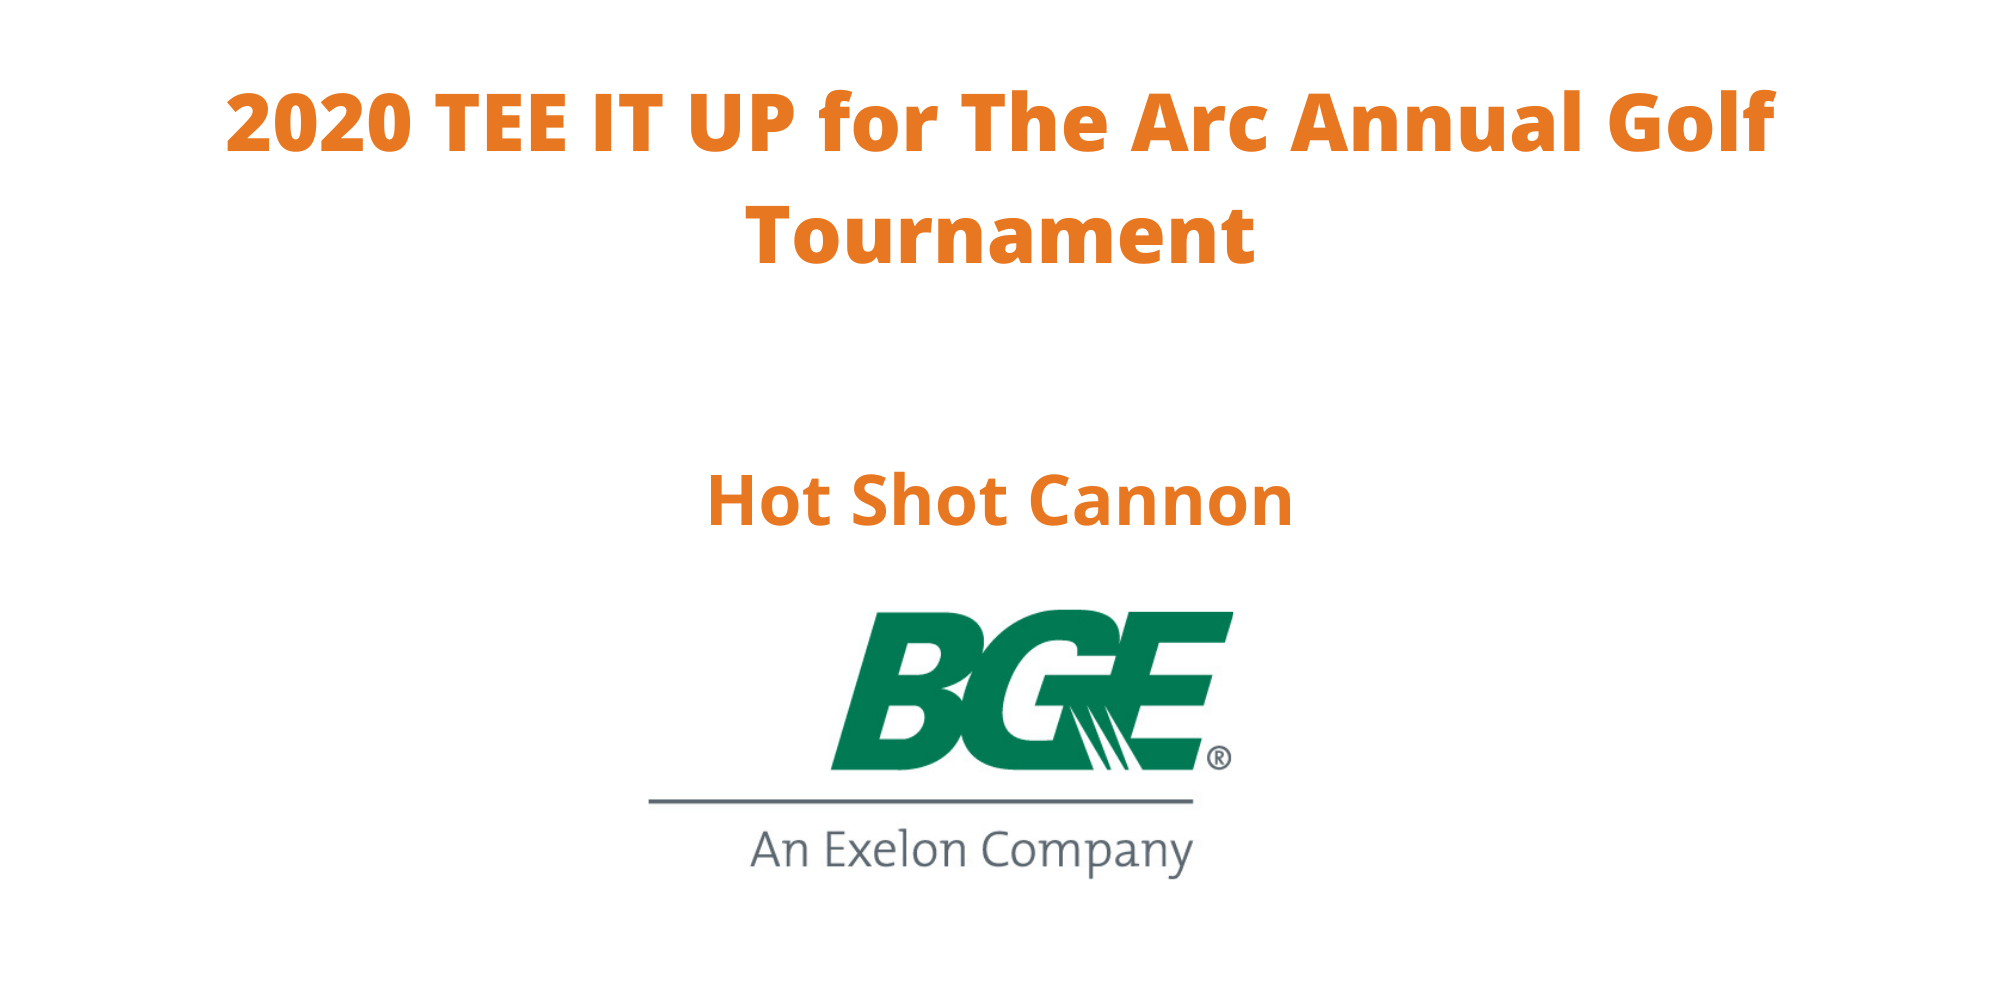 BGE, an Exelon Company, is the Hot Shot Cannon Sponsor of TEE IT UP for The Arc Annual Golf Tournament